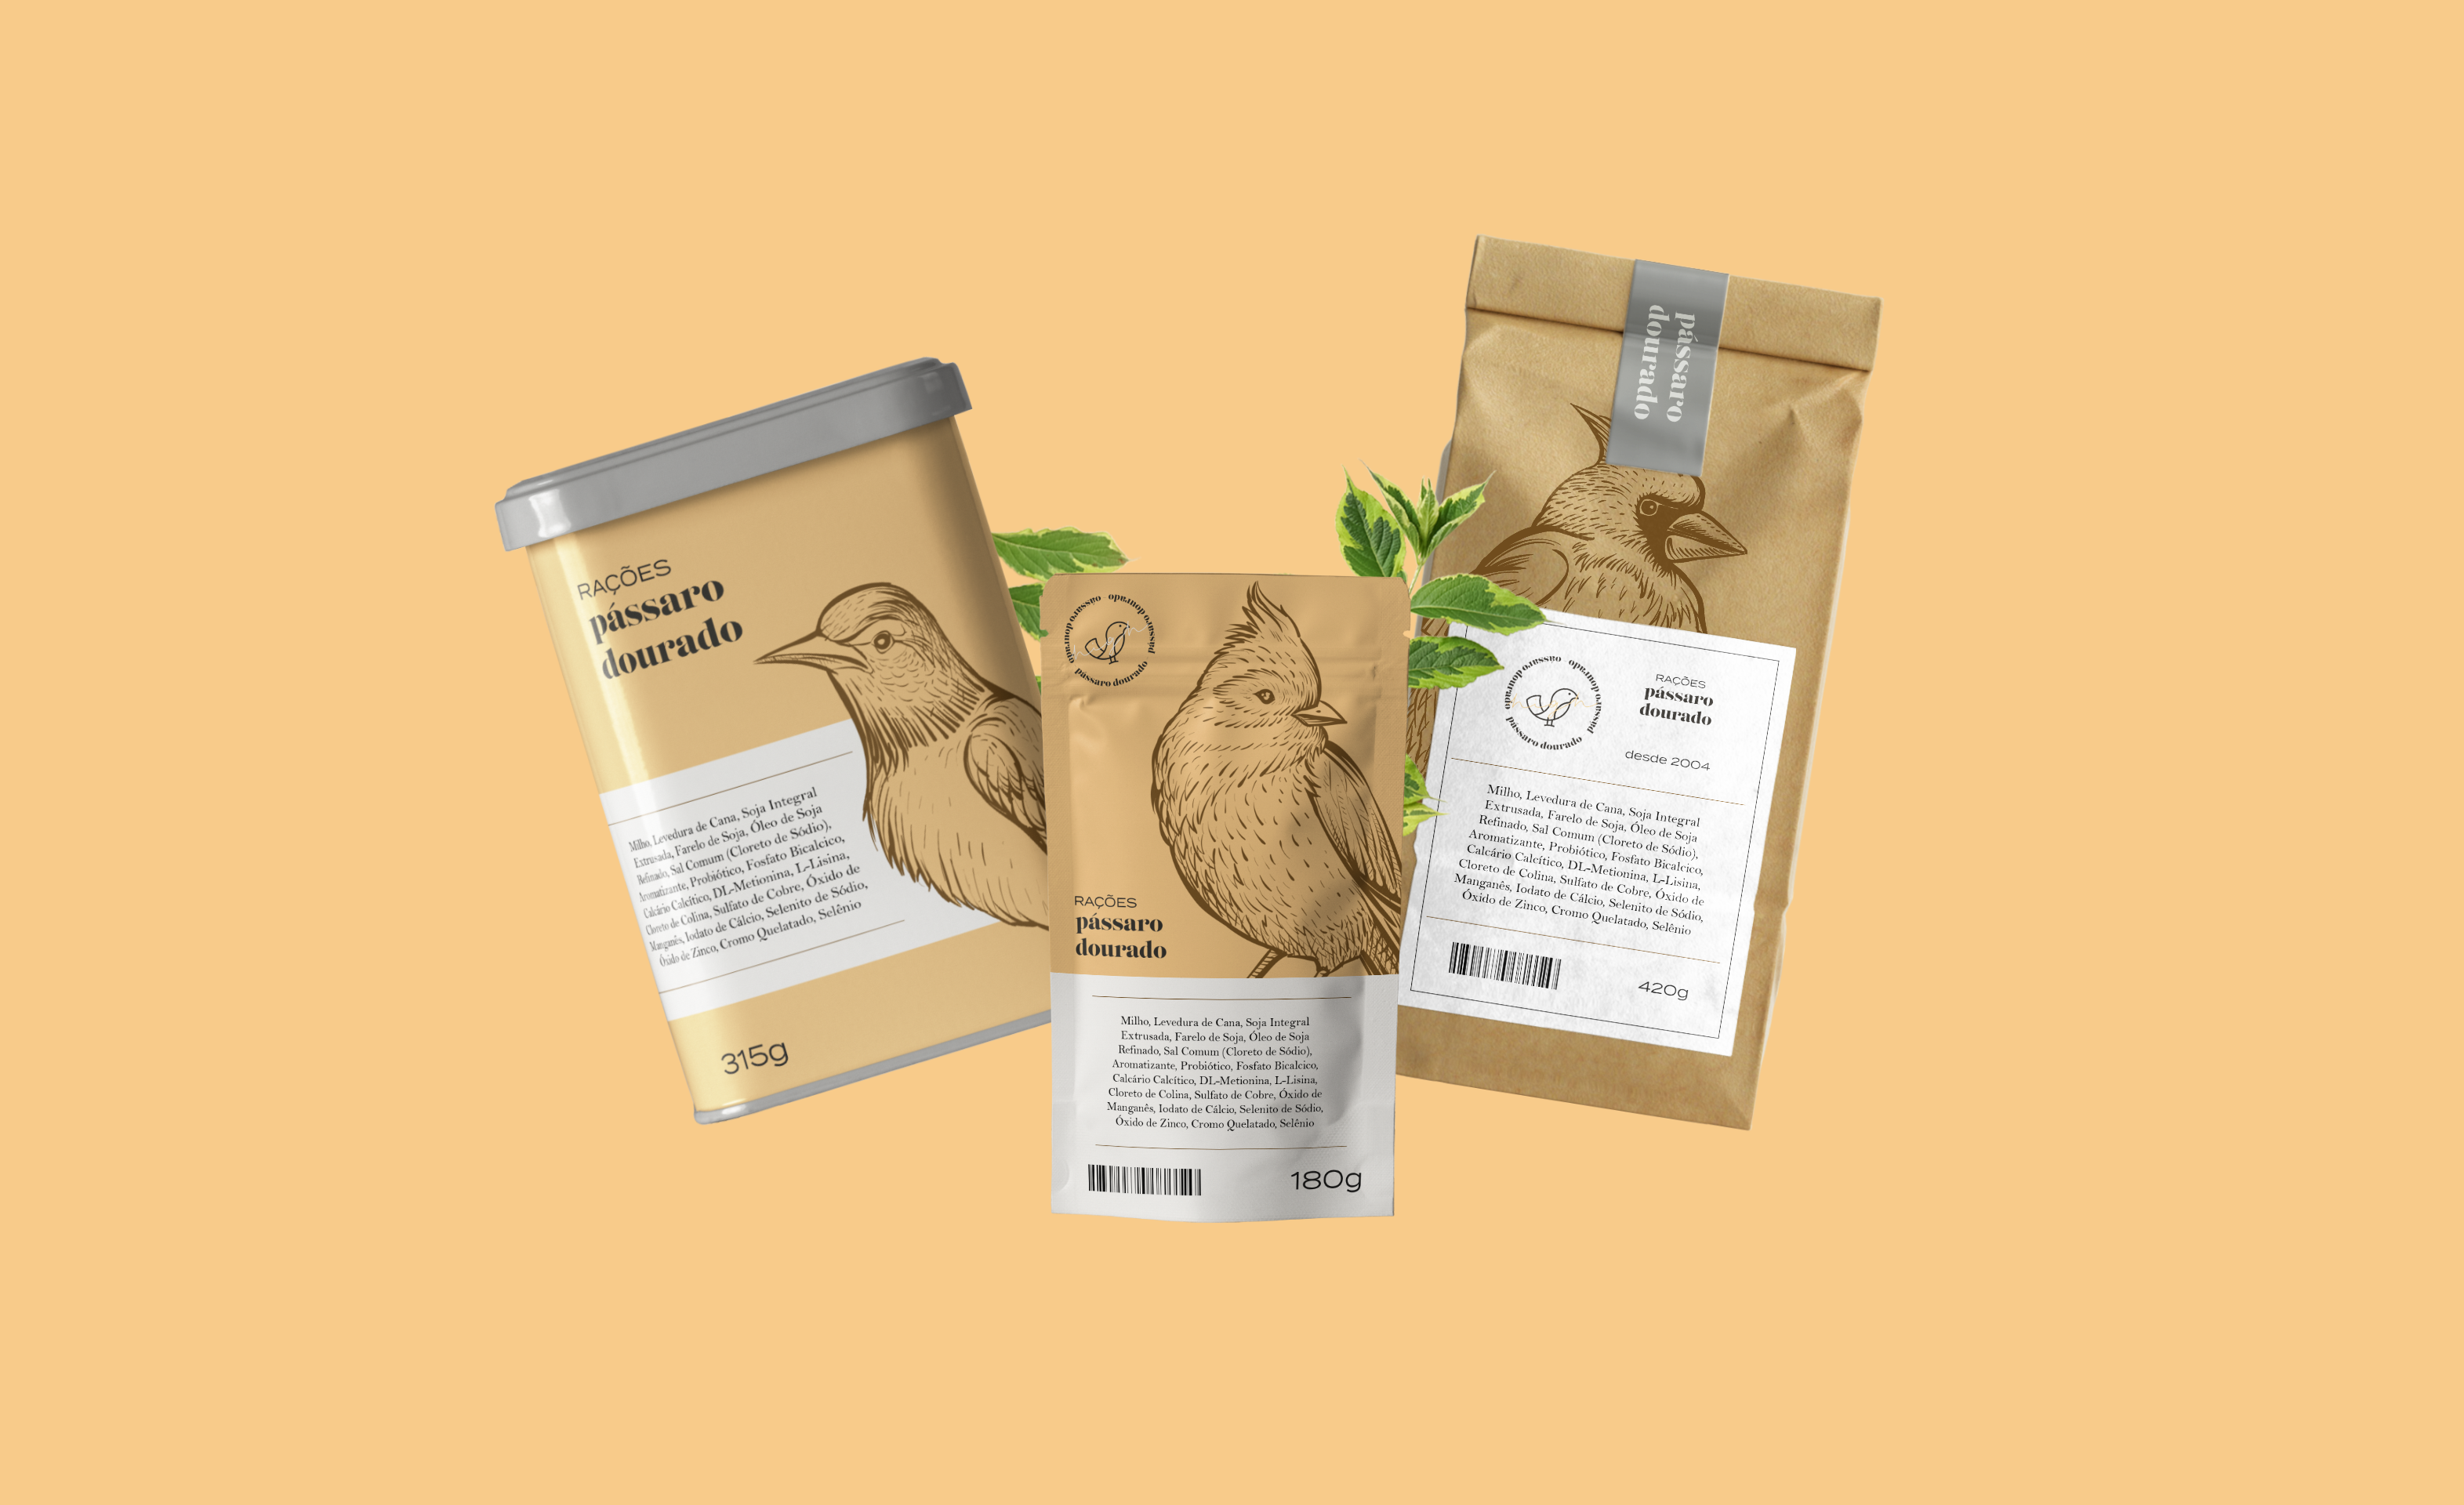 Pássaro Dourado Brand and Packaging Design